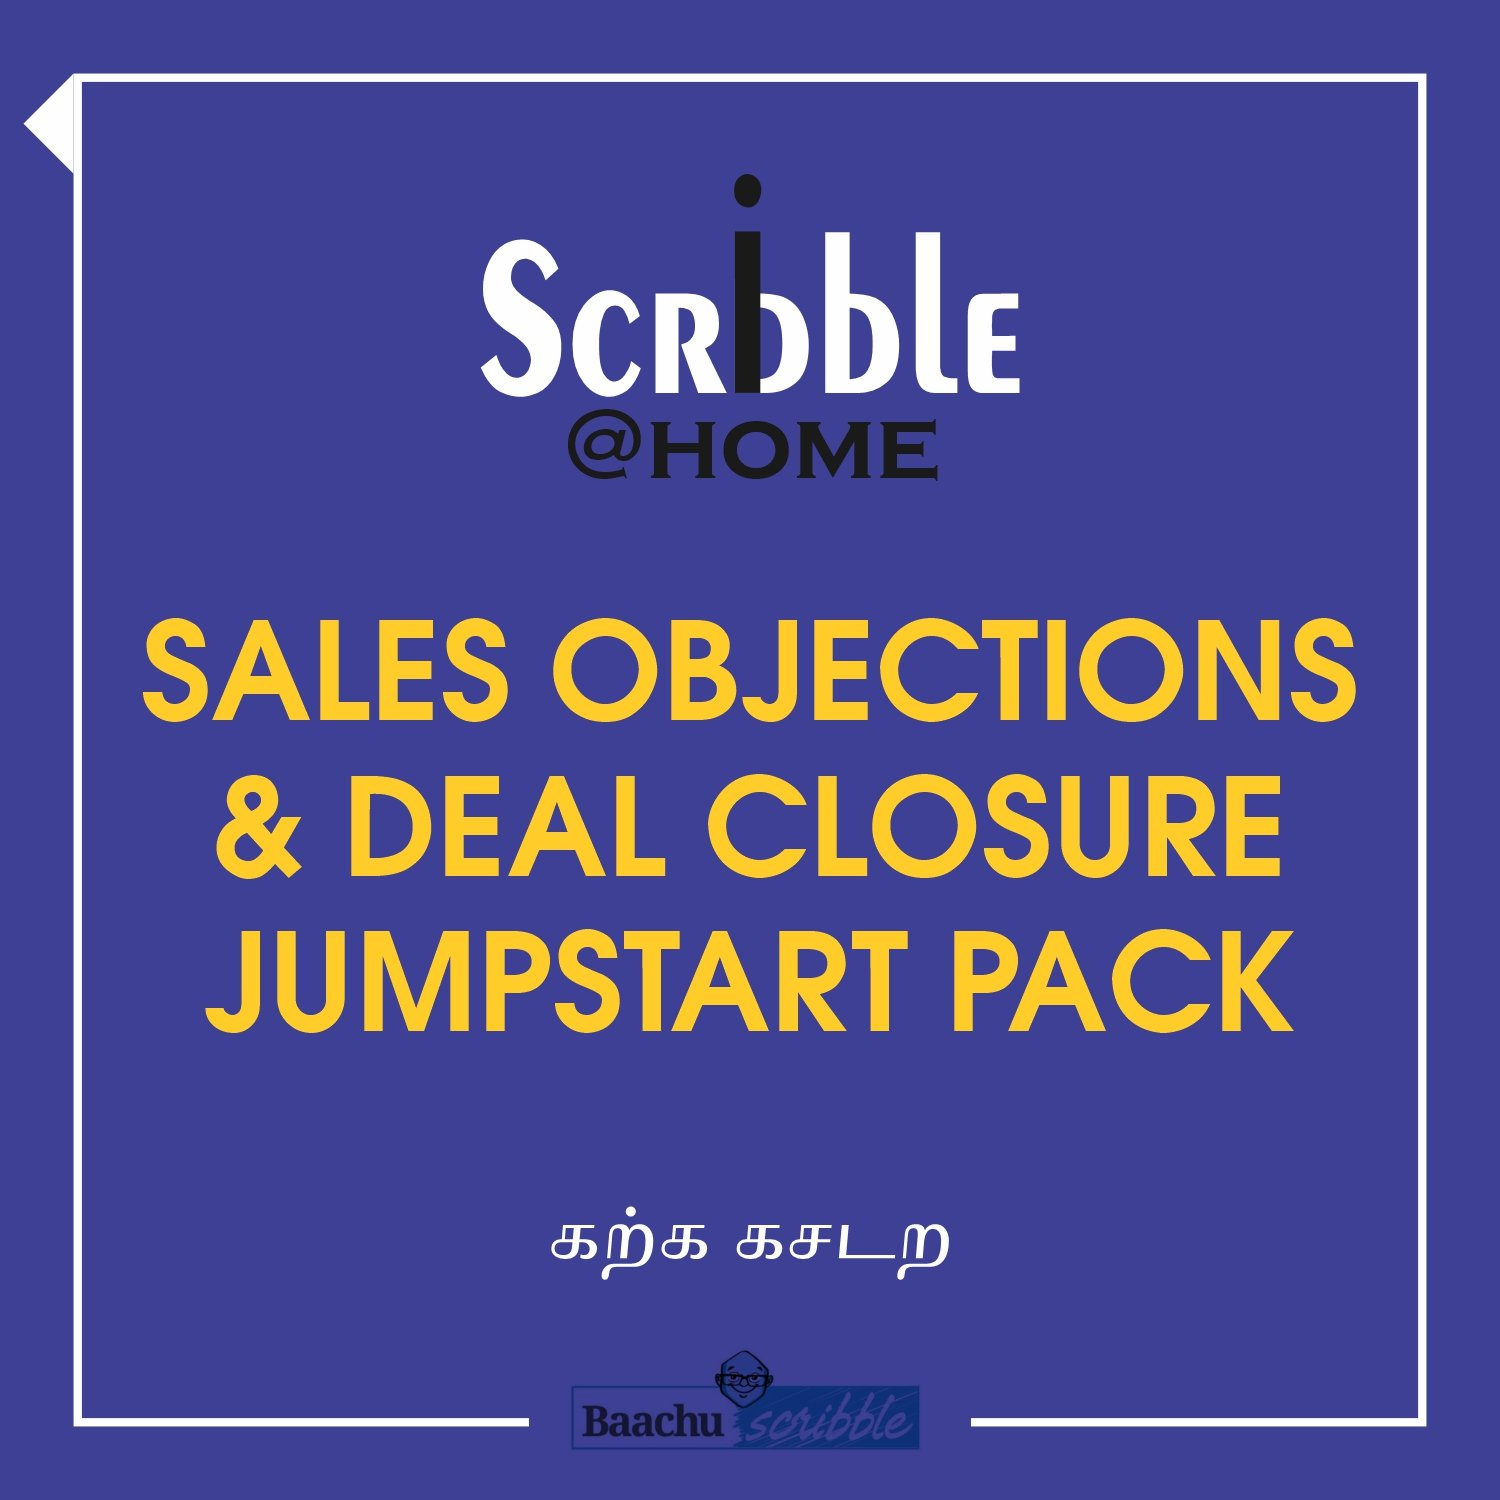 Sales Objections & Deal Closure Jumpstart Pack